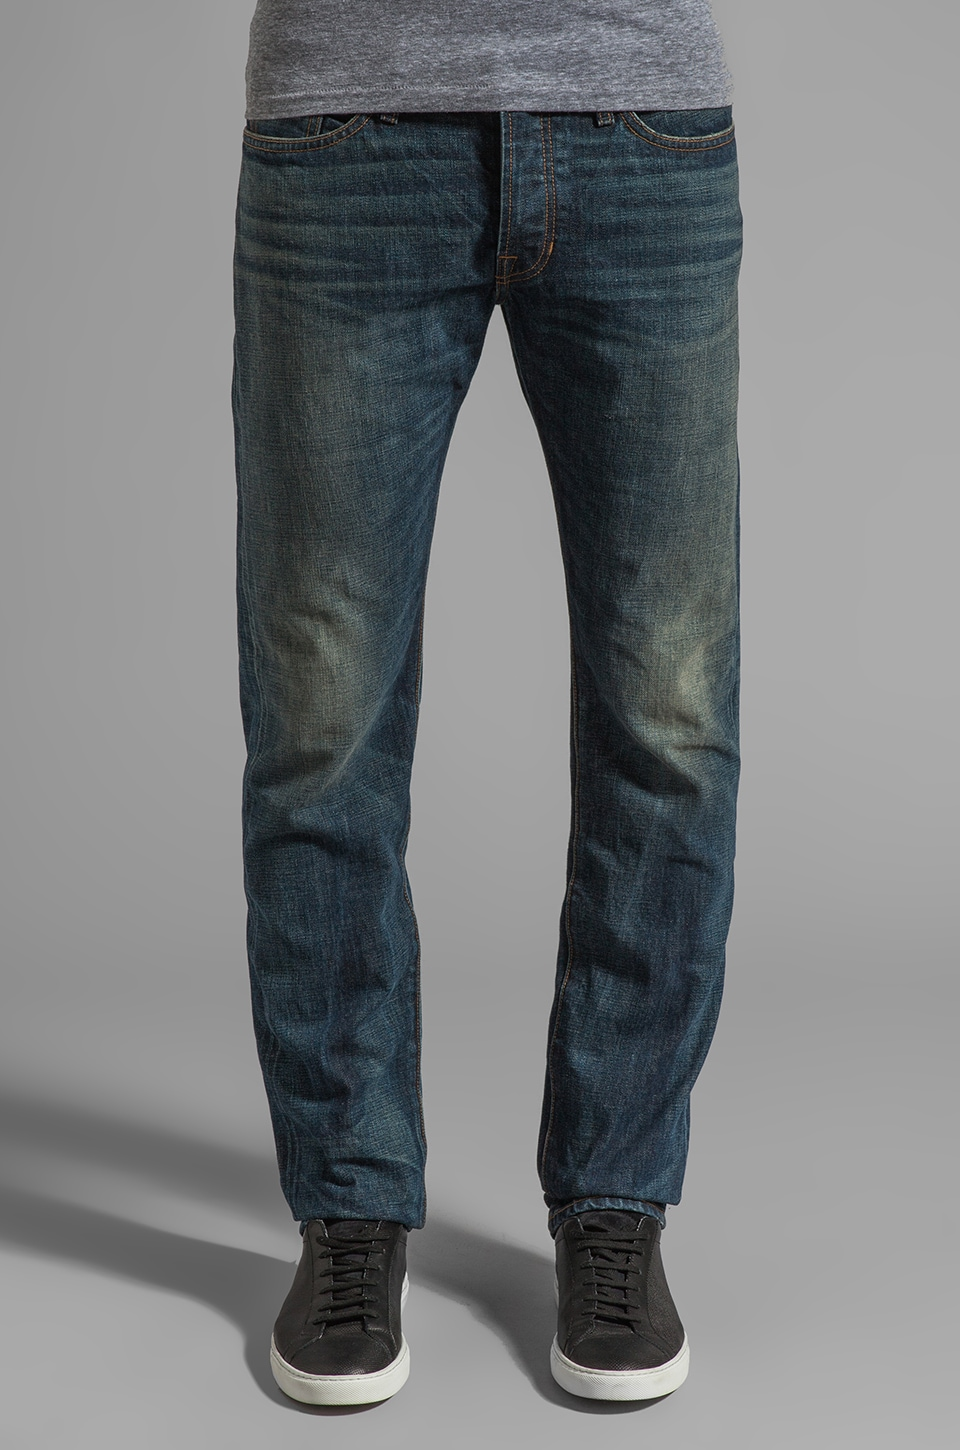 Vince Straight Leg Washed Selvedge Denim in Jefferson